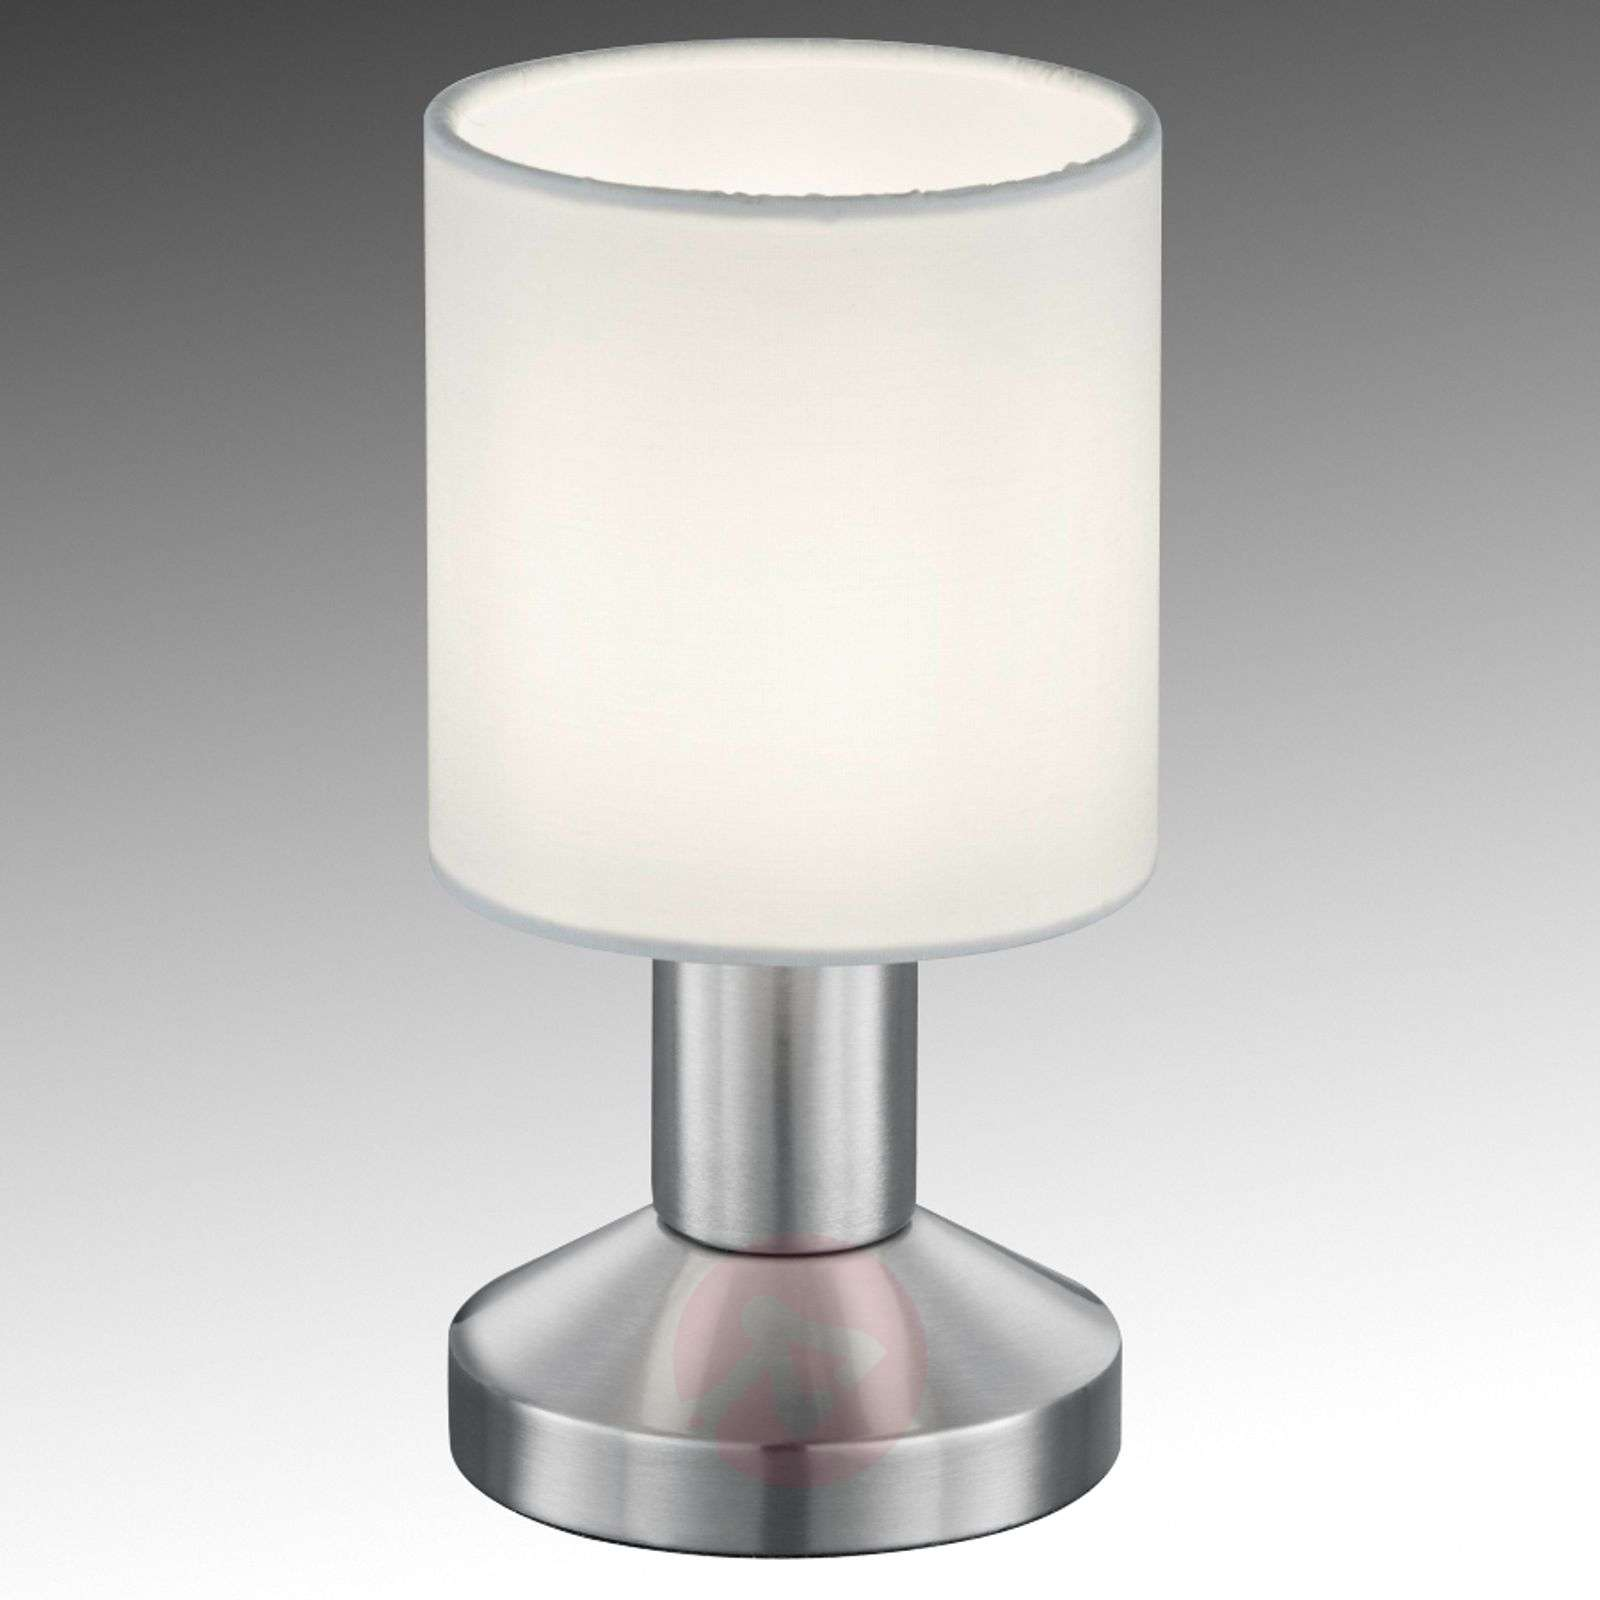 Fabric table lamp Garda with white lampshade-9005332-01